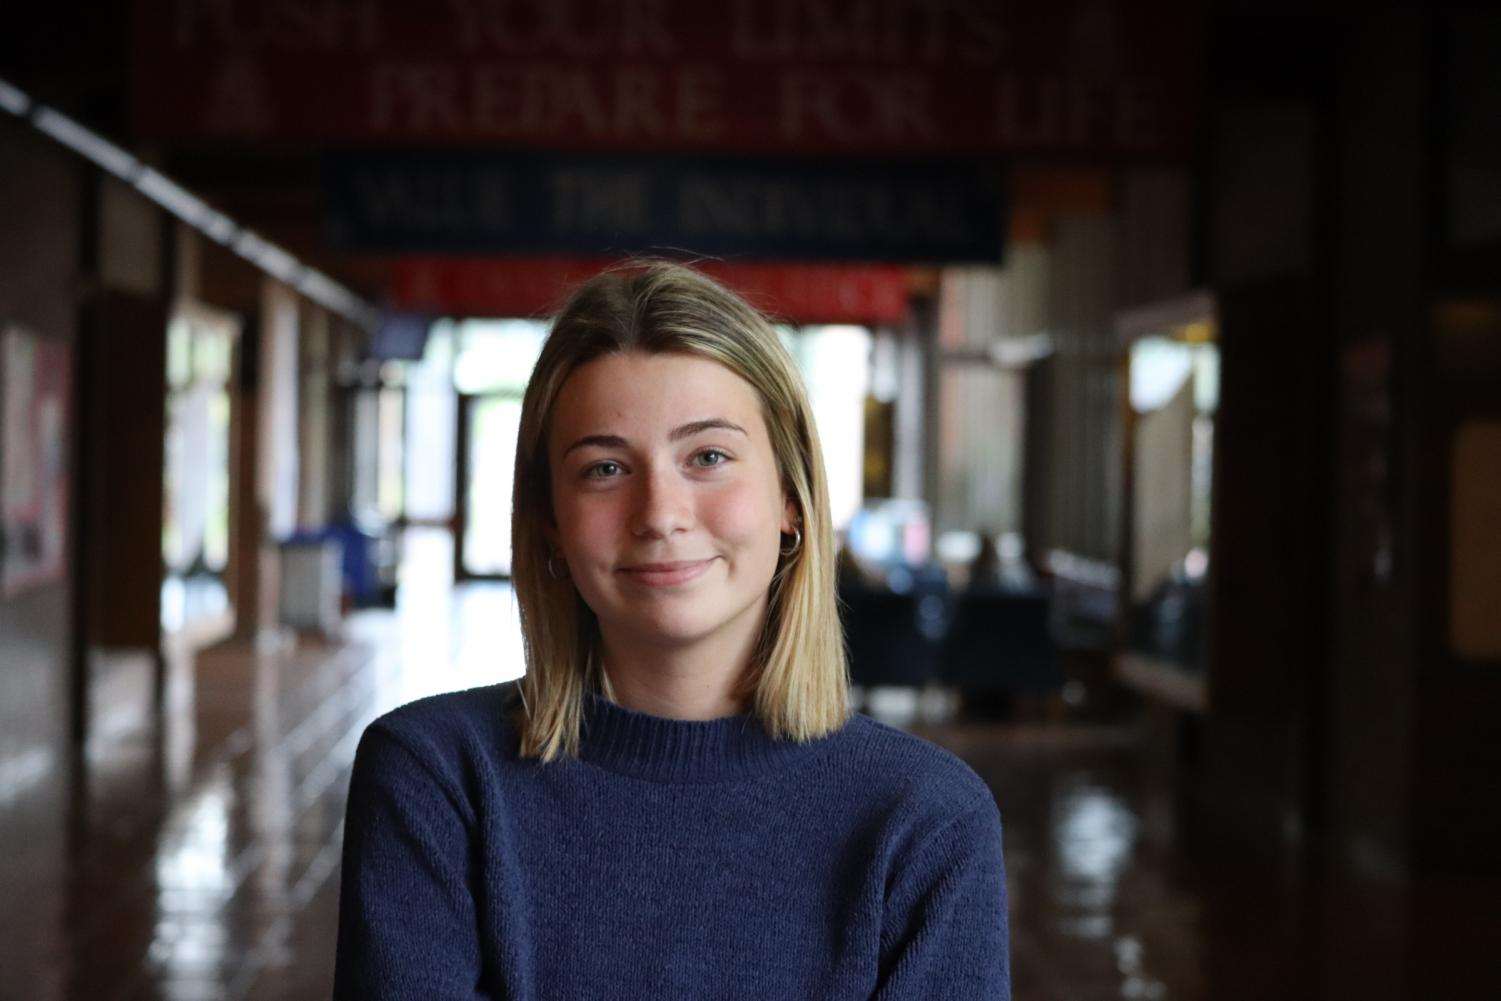 Choate, who is an attacking midfielder, has been playing soccer since she was three years old.